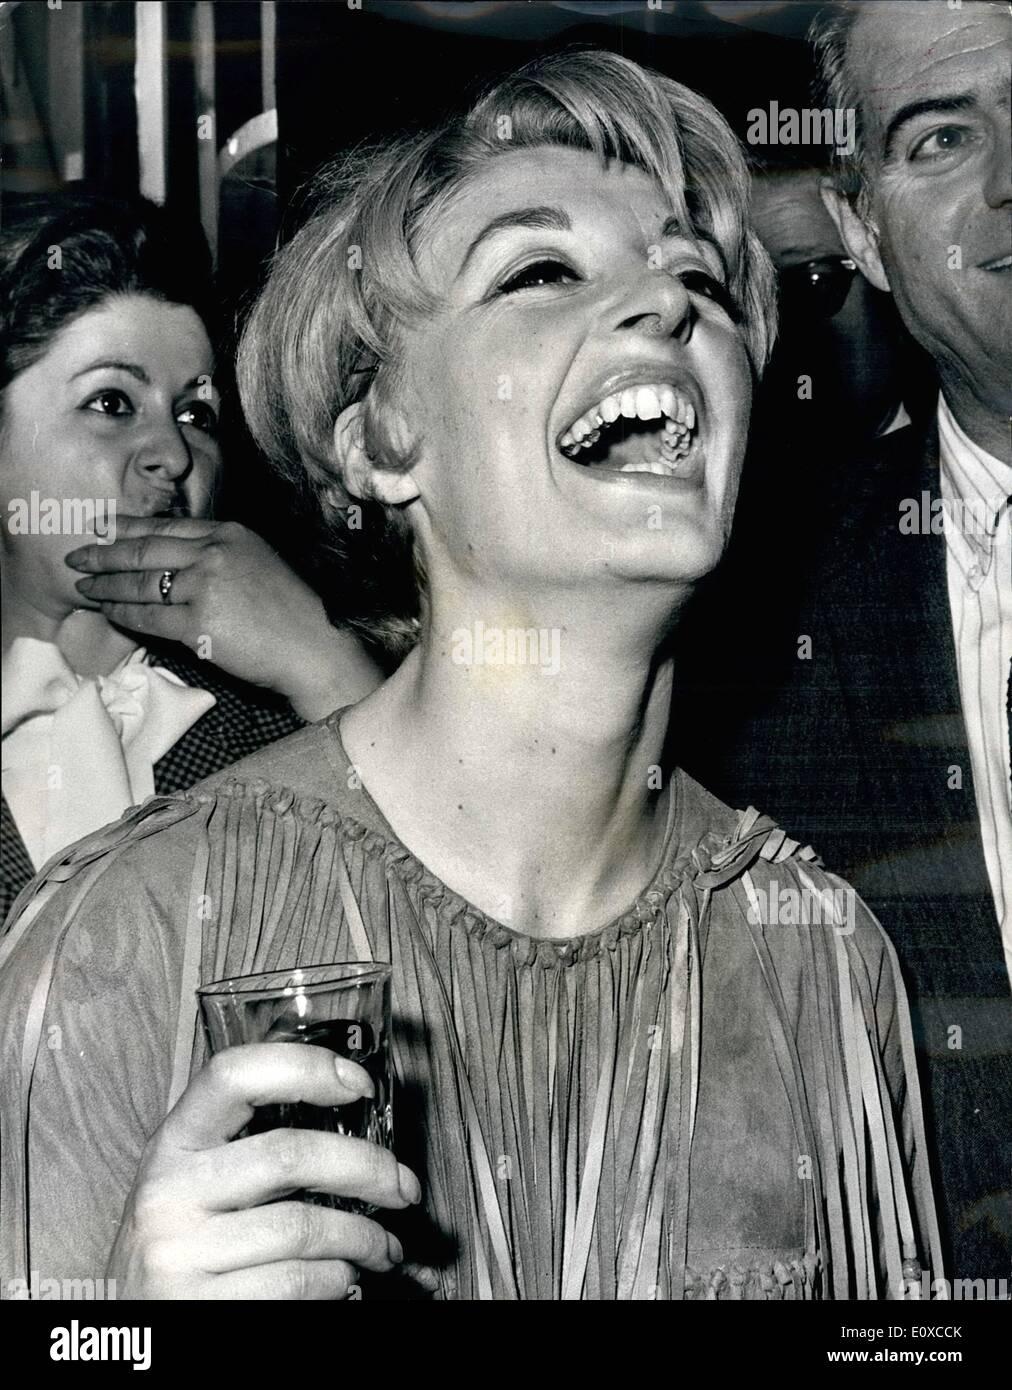 Apr. 04, 1966 - Barbra Streisand unable to appear. 600 of the audience walked out of a west end theater last night because American star Barbara Streisand was unable to appear. She dropped but of the hit musical ''Funny girl'' with an attach of gastric flu the walkout began after ester Michael Craig. Miss Streisand's co-star, announced from the stage that she would not appear - Stock Image